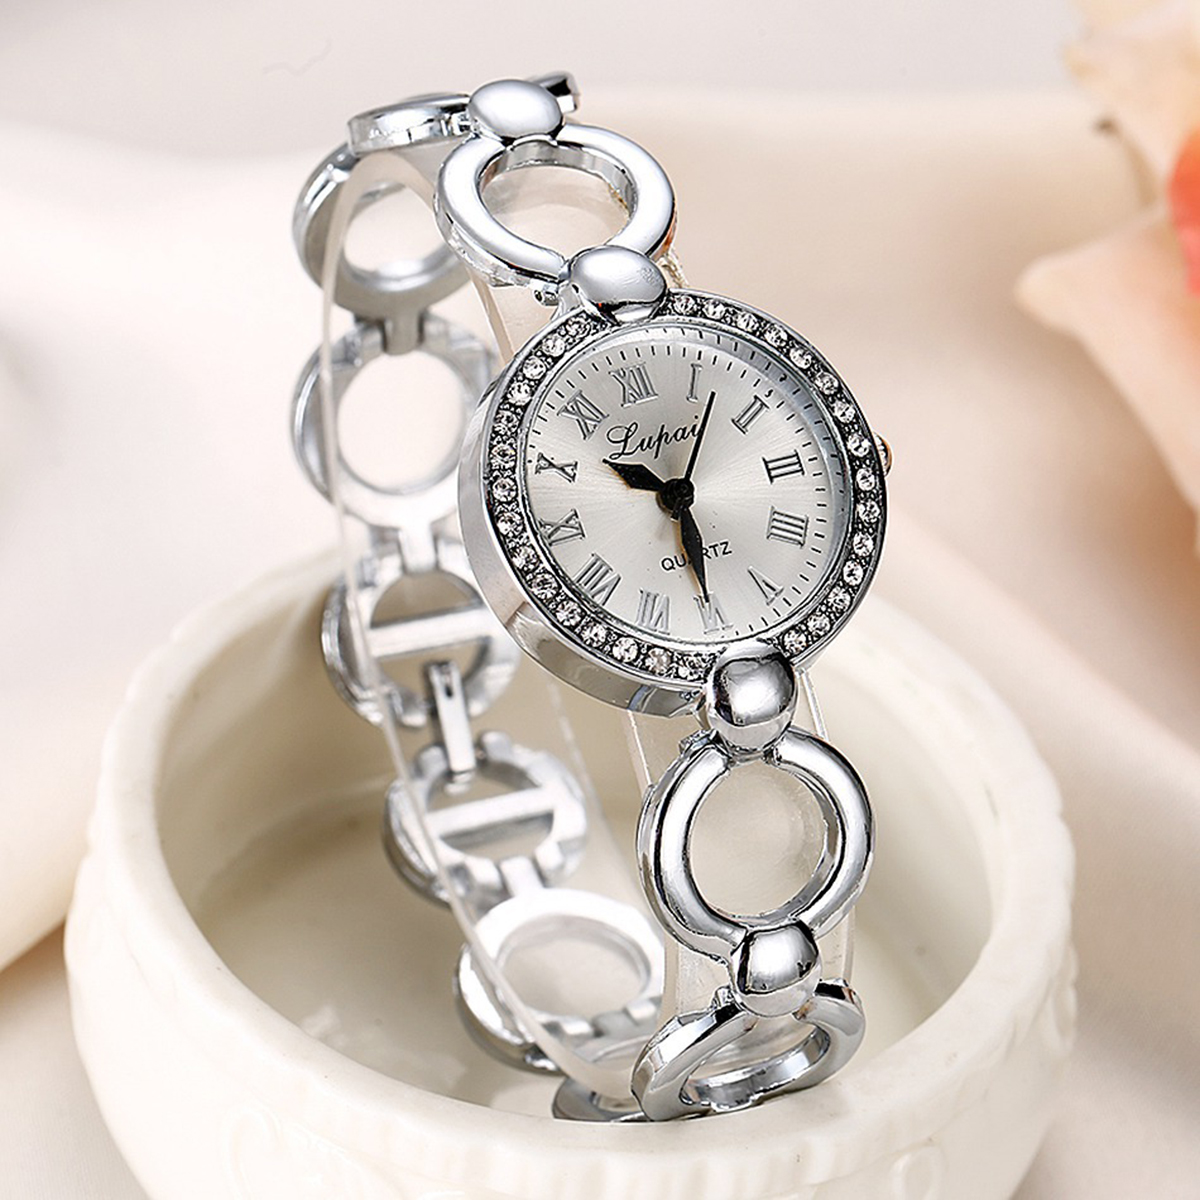 Fashion Women Lady Bling Stainless Steel Crystal Watch Elegant Luxury Analog Quartz Bracelet Wrist Watches Relogio Feminino new arrival fashion women watches analog quartz rhinestone crystal stainless steel wrist watch relogio feminino